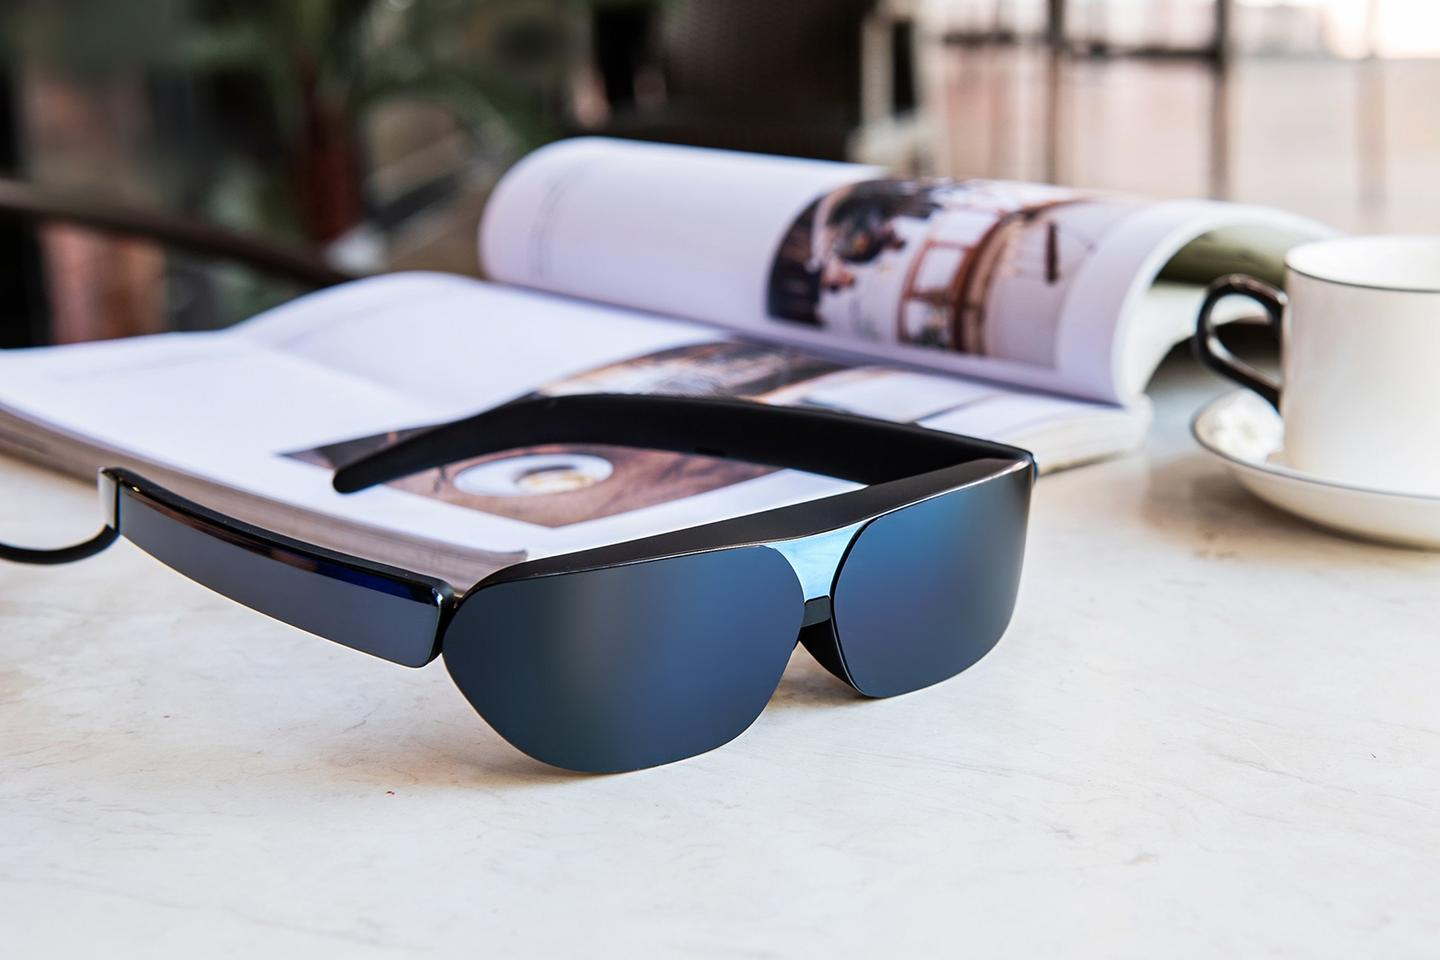 The NXTWEAR G specs are powered by a phone, tablet, or laptop